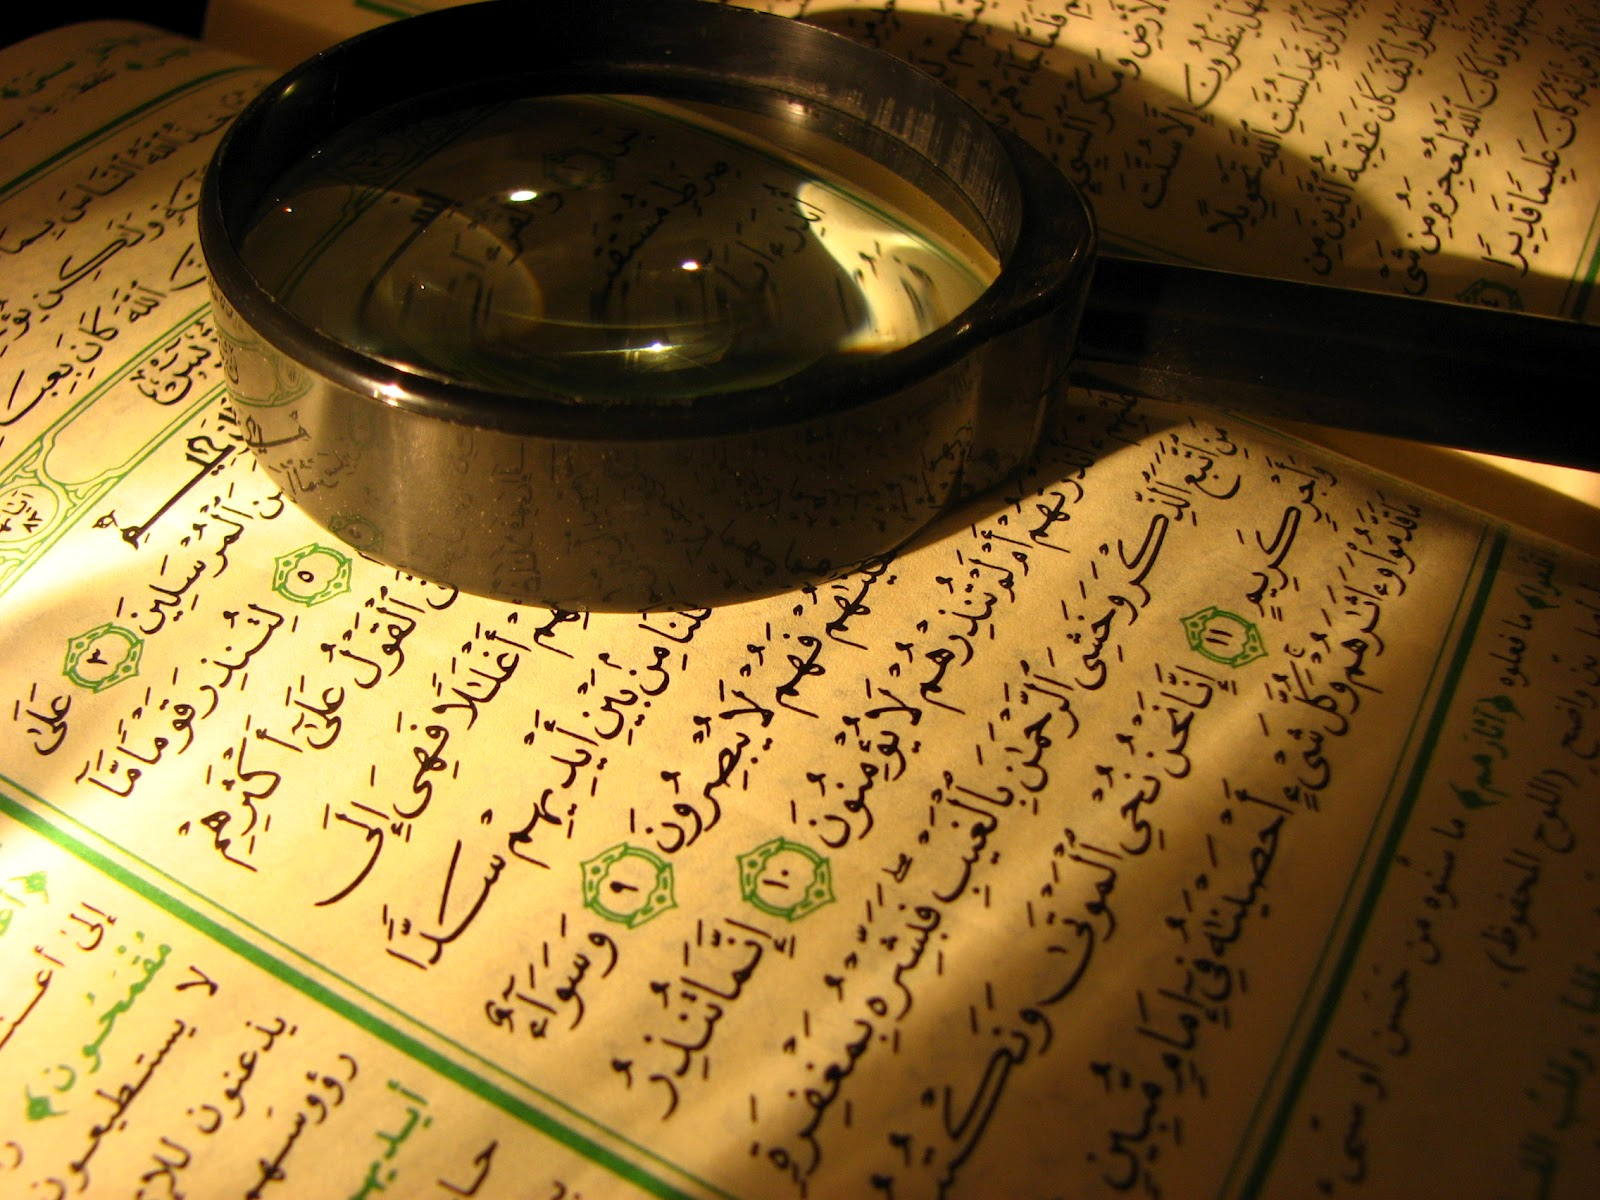 How many non-Muslims have you talked to about Islam? What effort have you ever made to clear up misconceptions about Islam? If not actually just added to it?